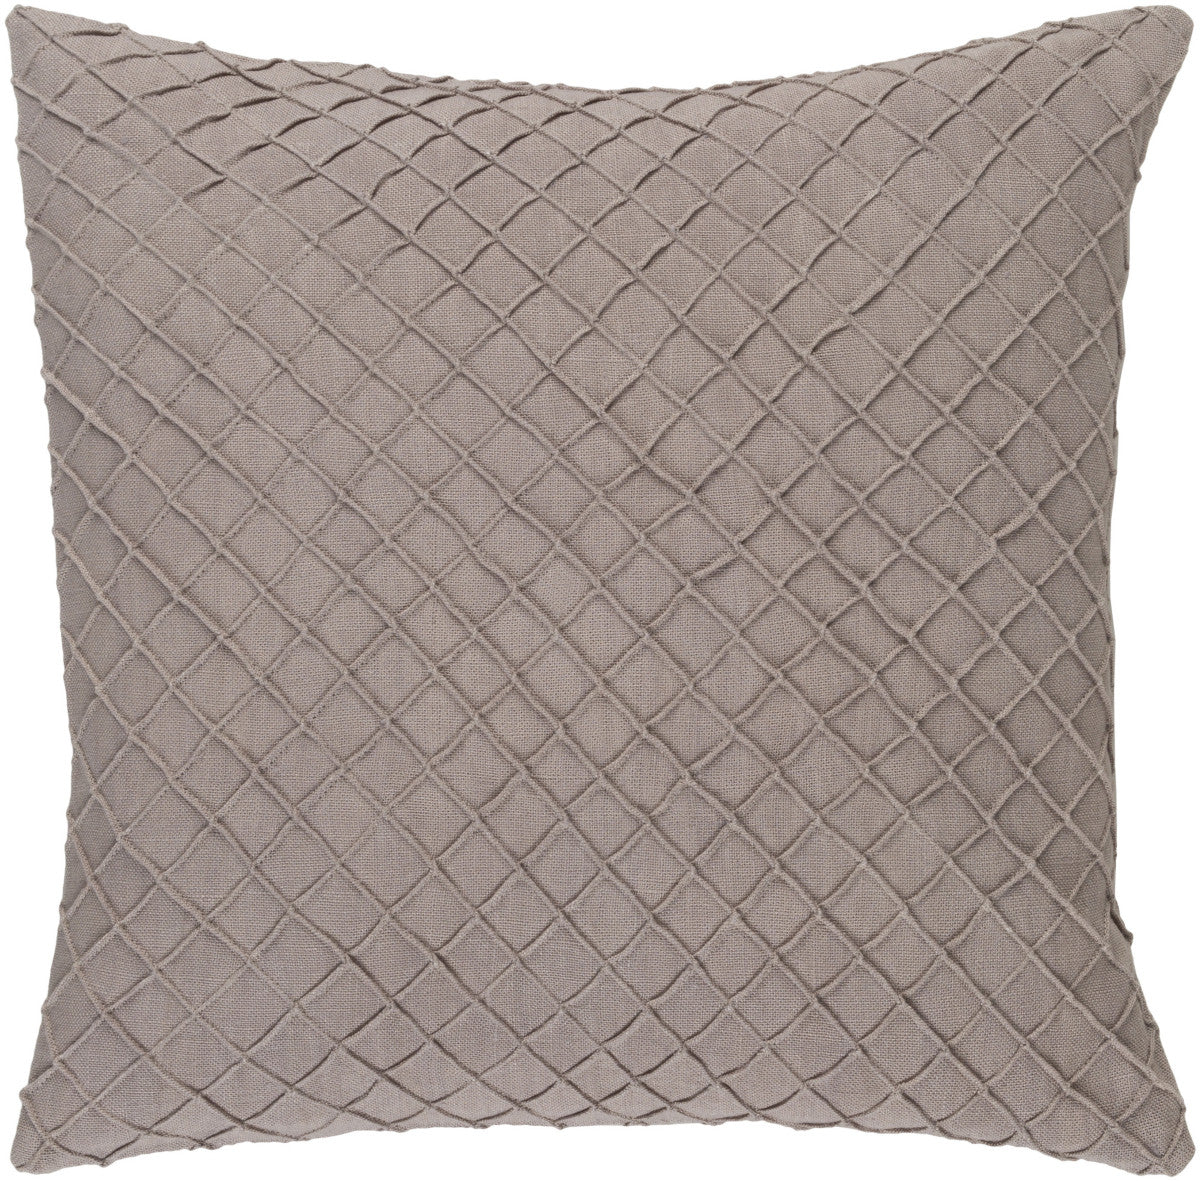 Surya Wright WR003 Pillow